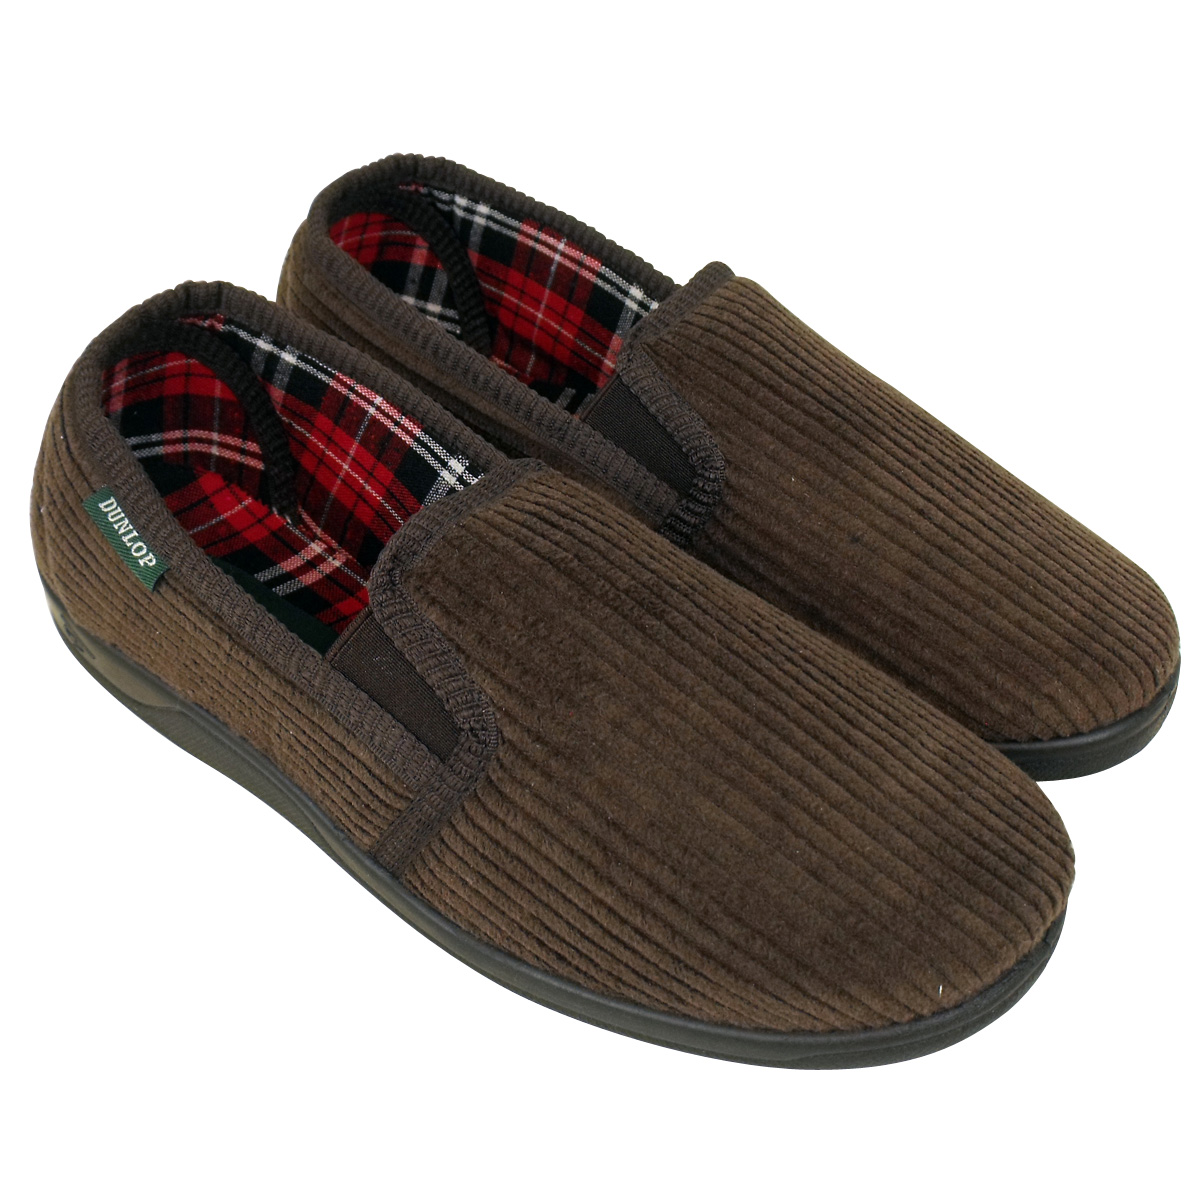 Kids' Slippers for Boys. Showing 48 of results that match your query. Search Product Result. Best Seller. Product Image. Price $ 9. Product Title. Product - MeMoi Kids Dinoaur Slippers | Boys Slippers and Kids Slippers by MeMoi L / Black MKF5 .